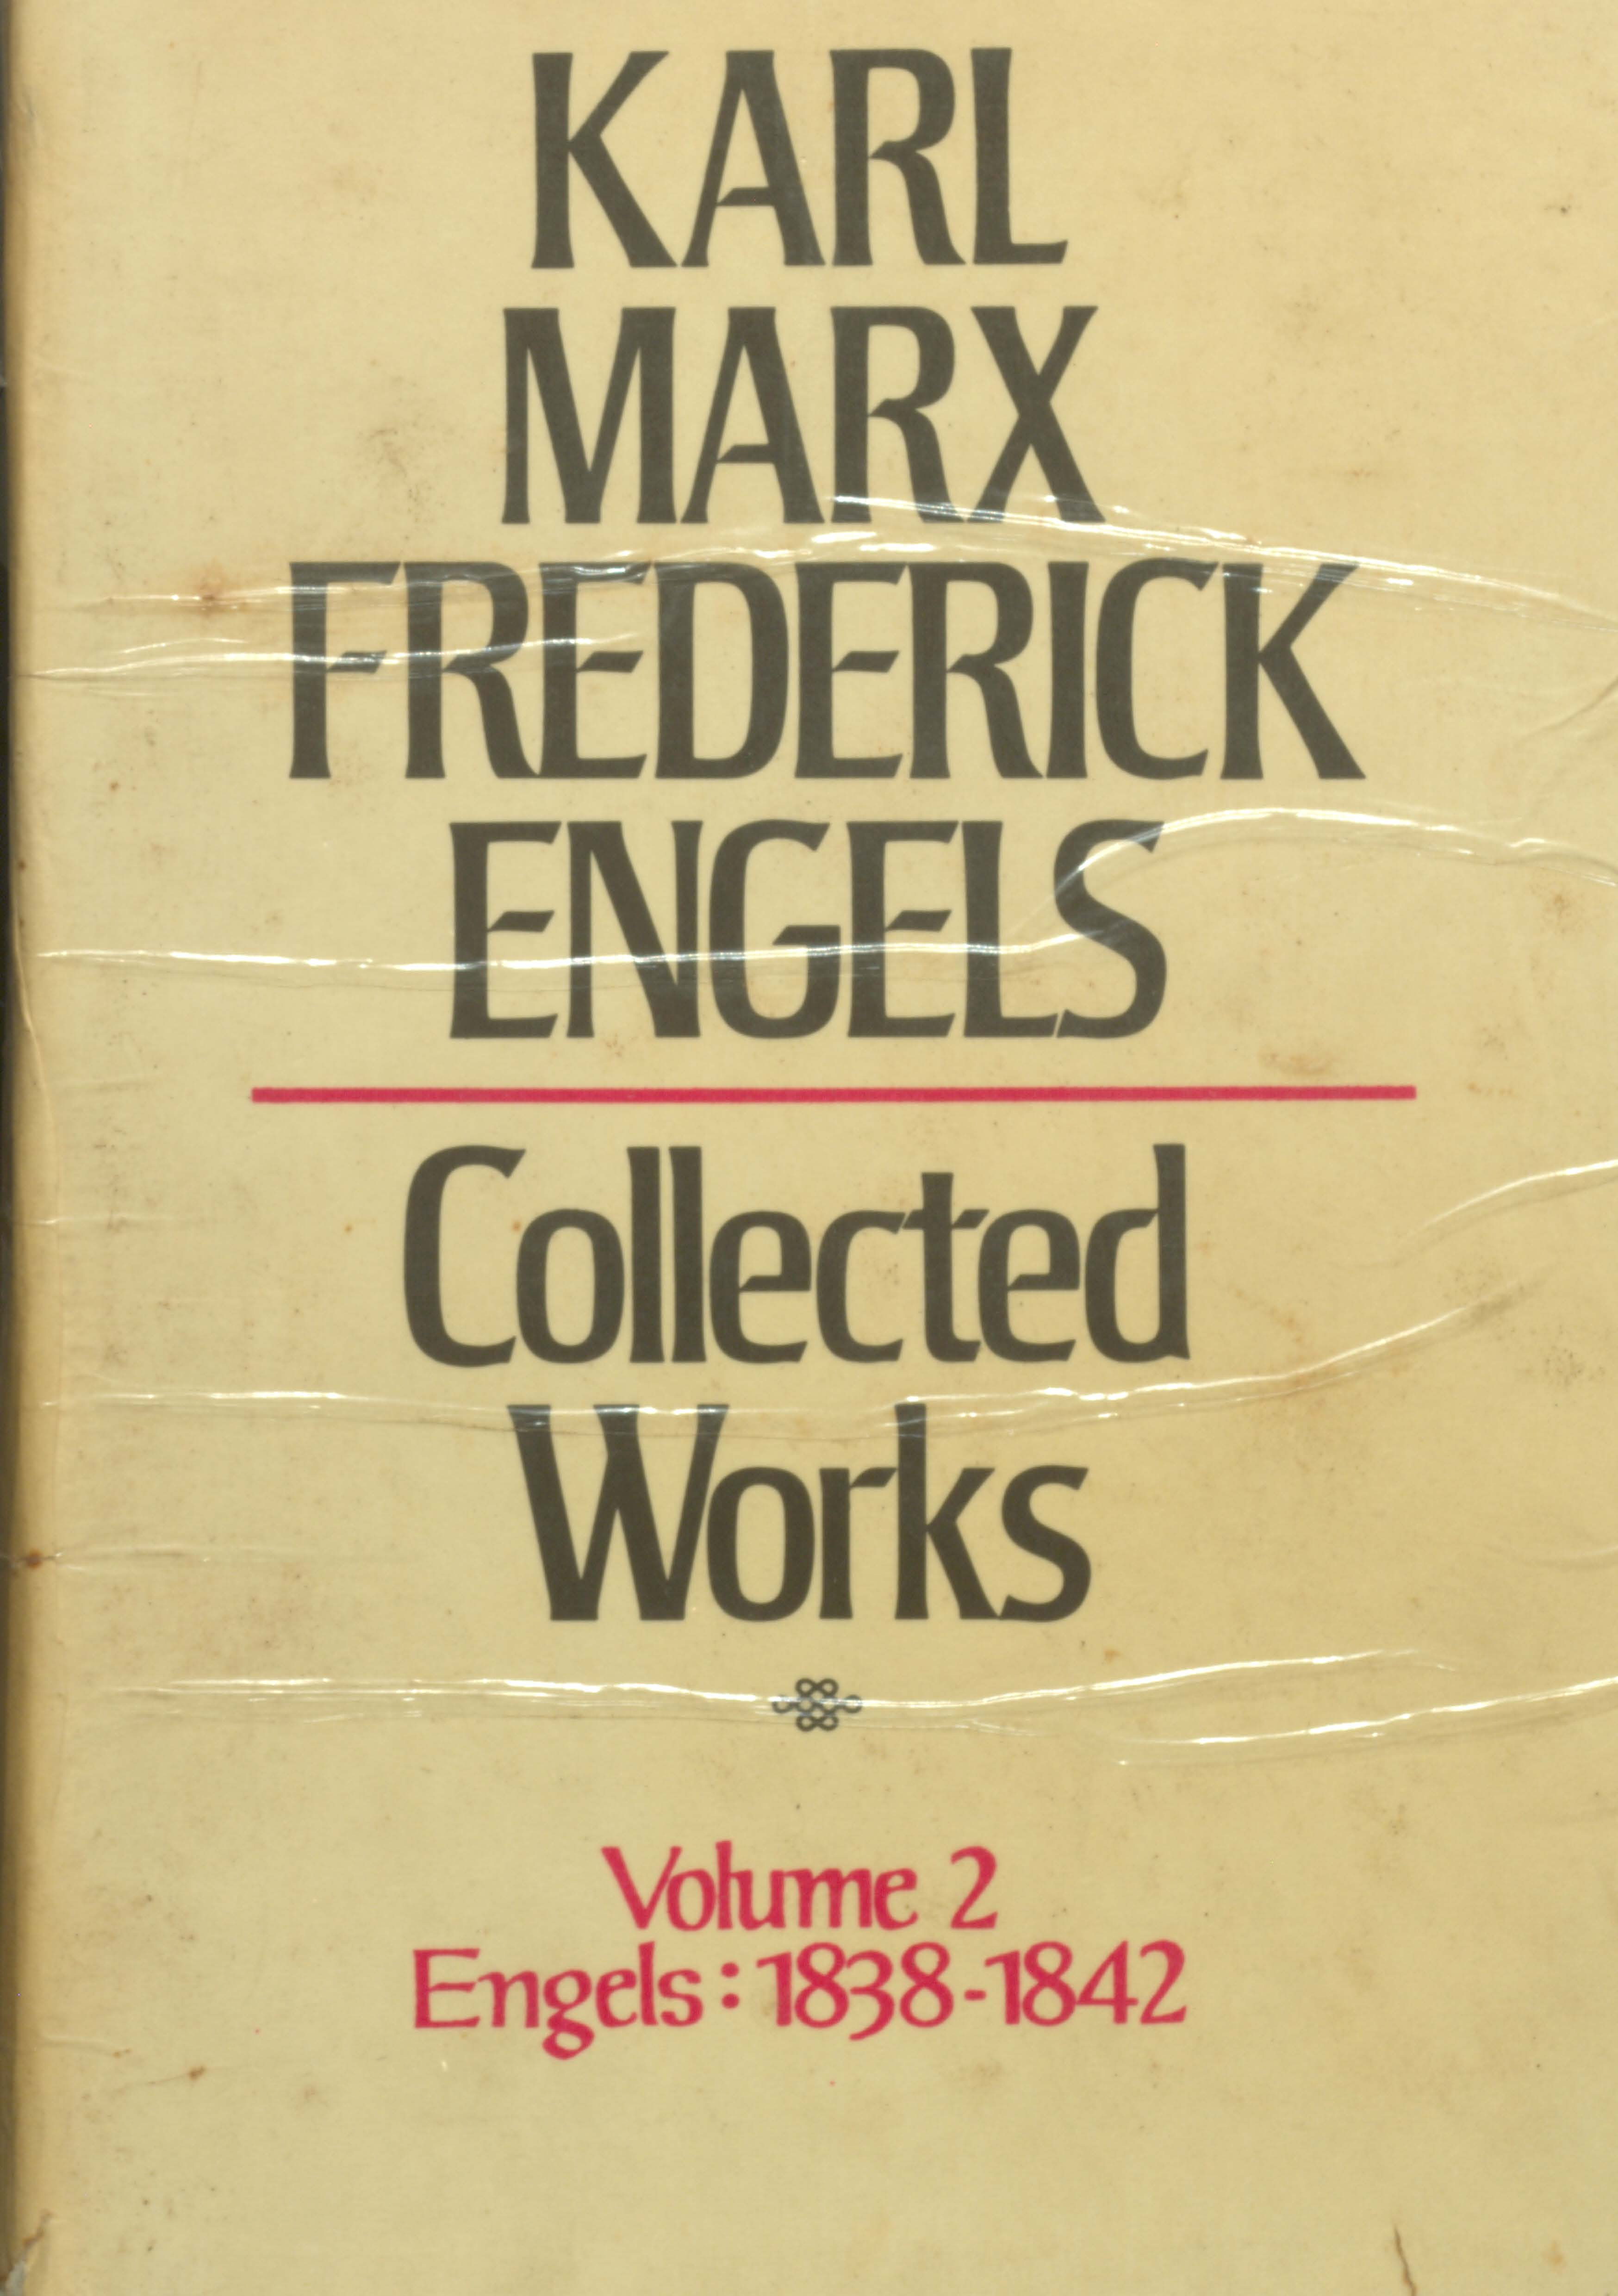 Karl marx frederick engels collected works volume 2 Engels(1838-1842)